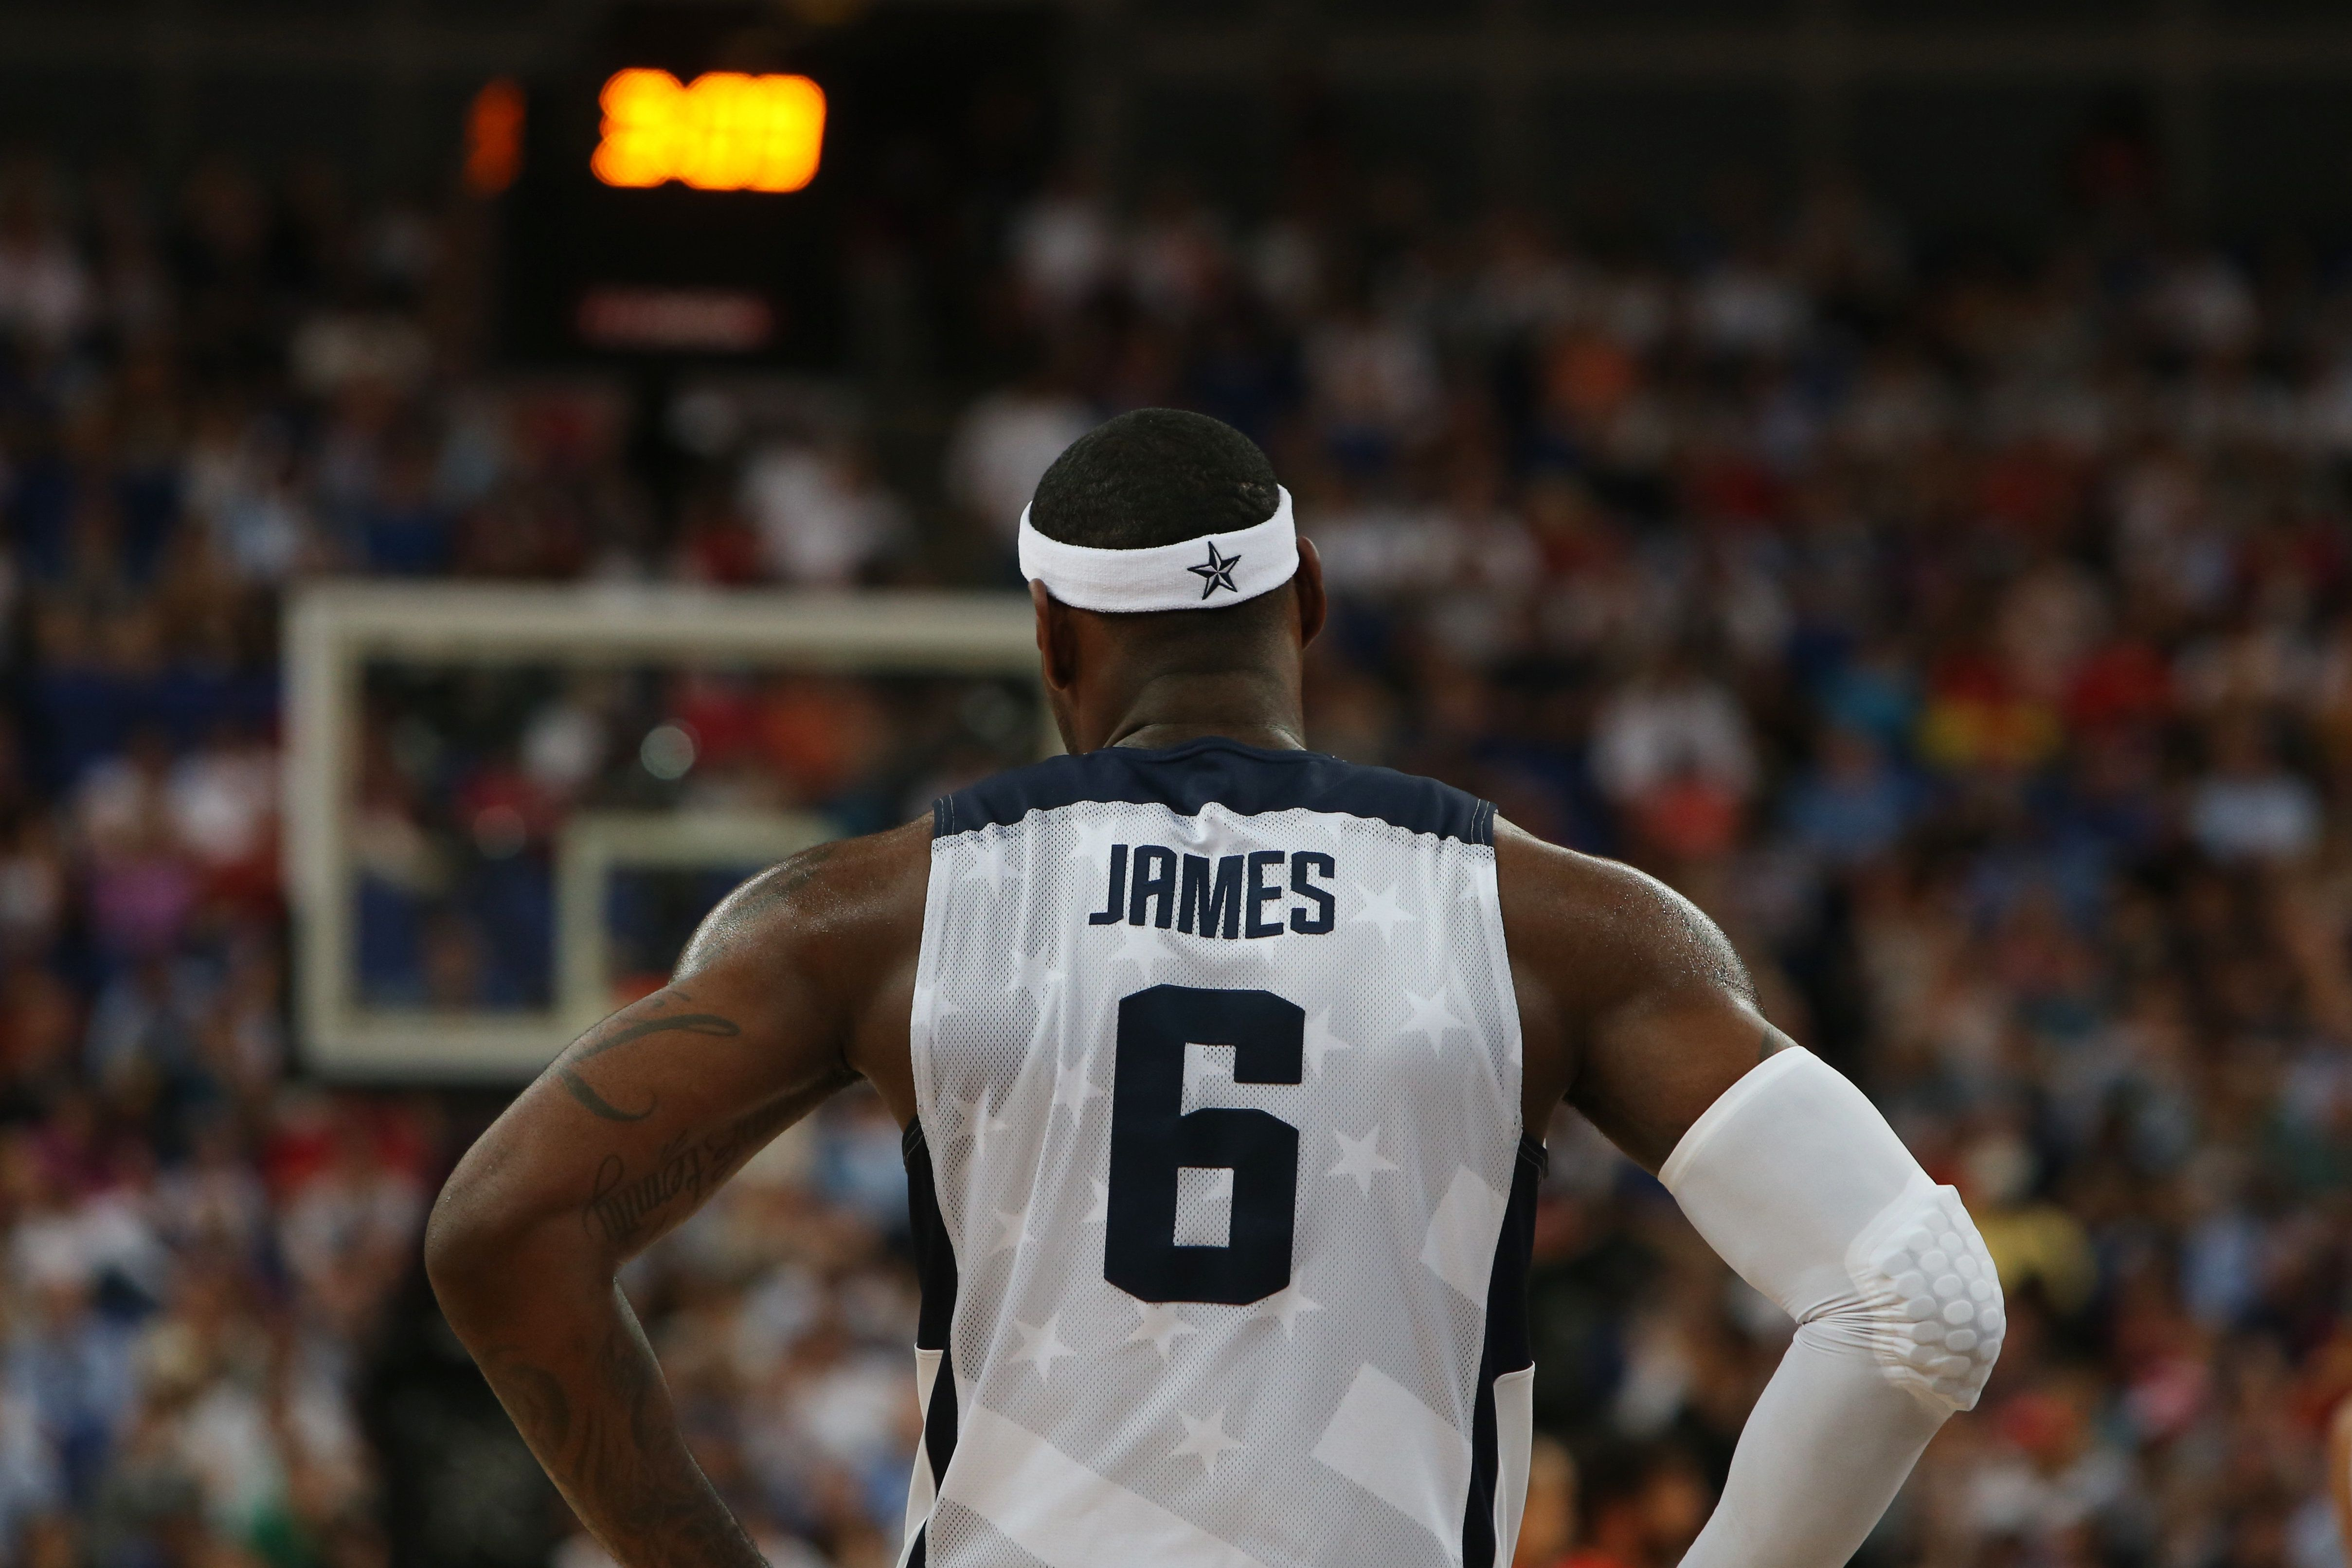 The USA's LeBron James during the Men's Basketball Final between USA and Spain at the North Greenwich Arena during the London 2012 Olympic games. London, UK. 12th August 2012. (Photo: Steve Christo) (Photo by Steve  Christo/Corbis via Getty Images)